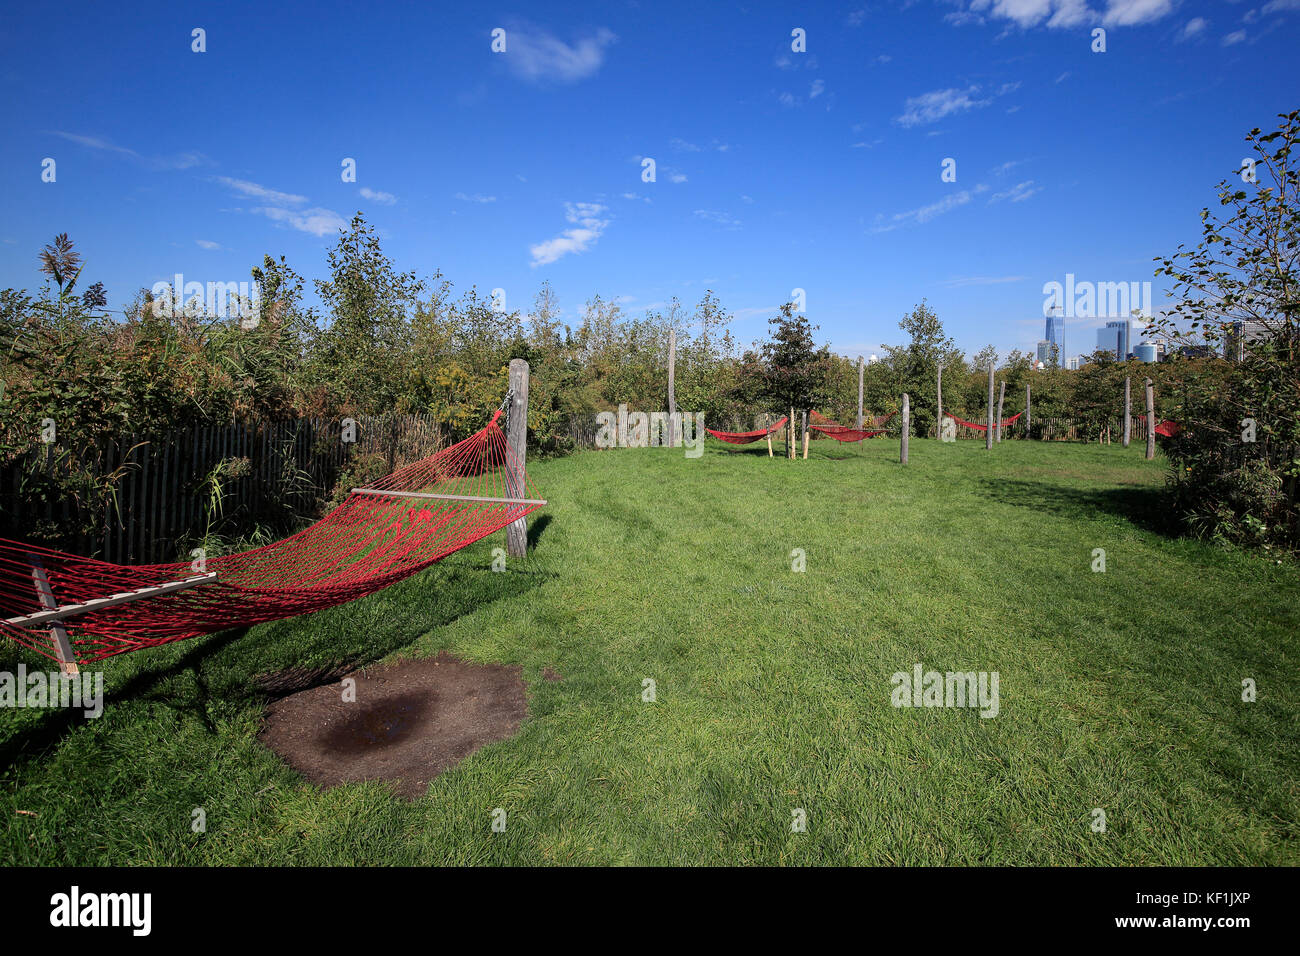 Hammock cove in The Hills Park on Governors Island, New York City - Stock Image